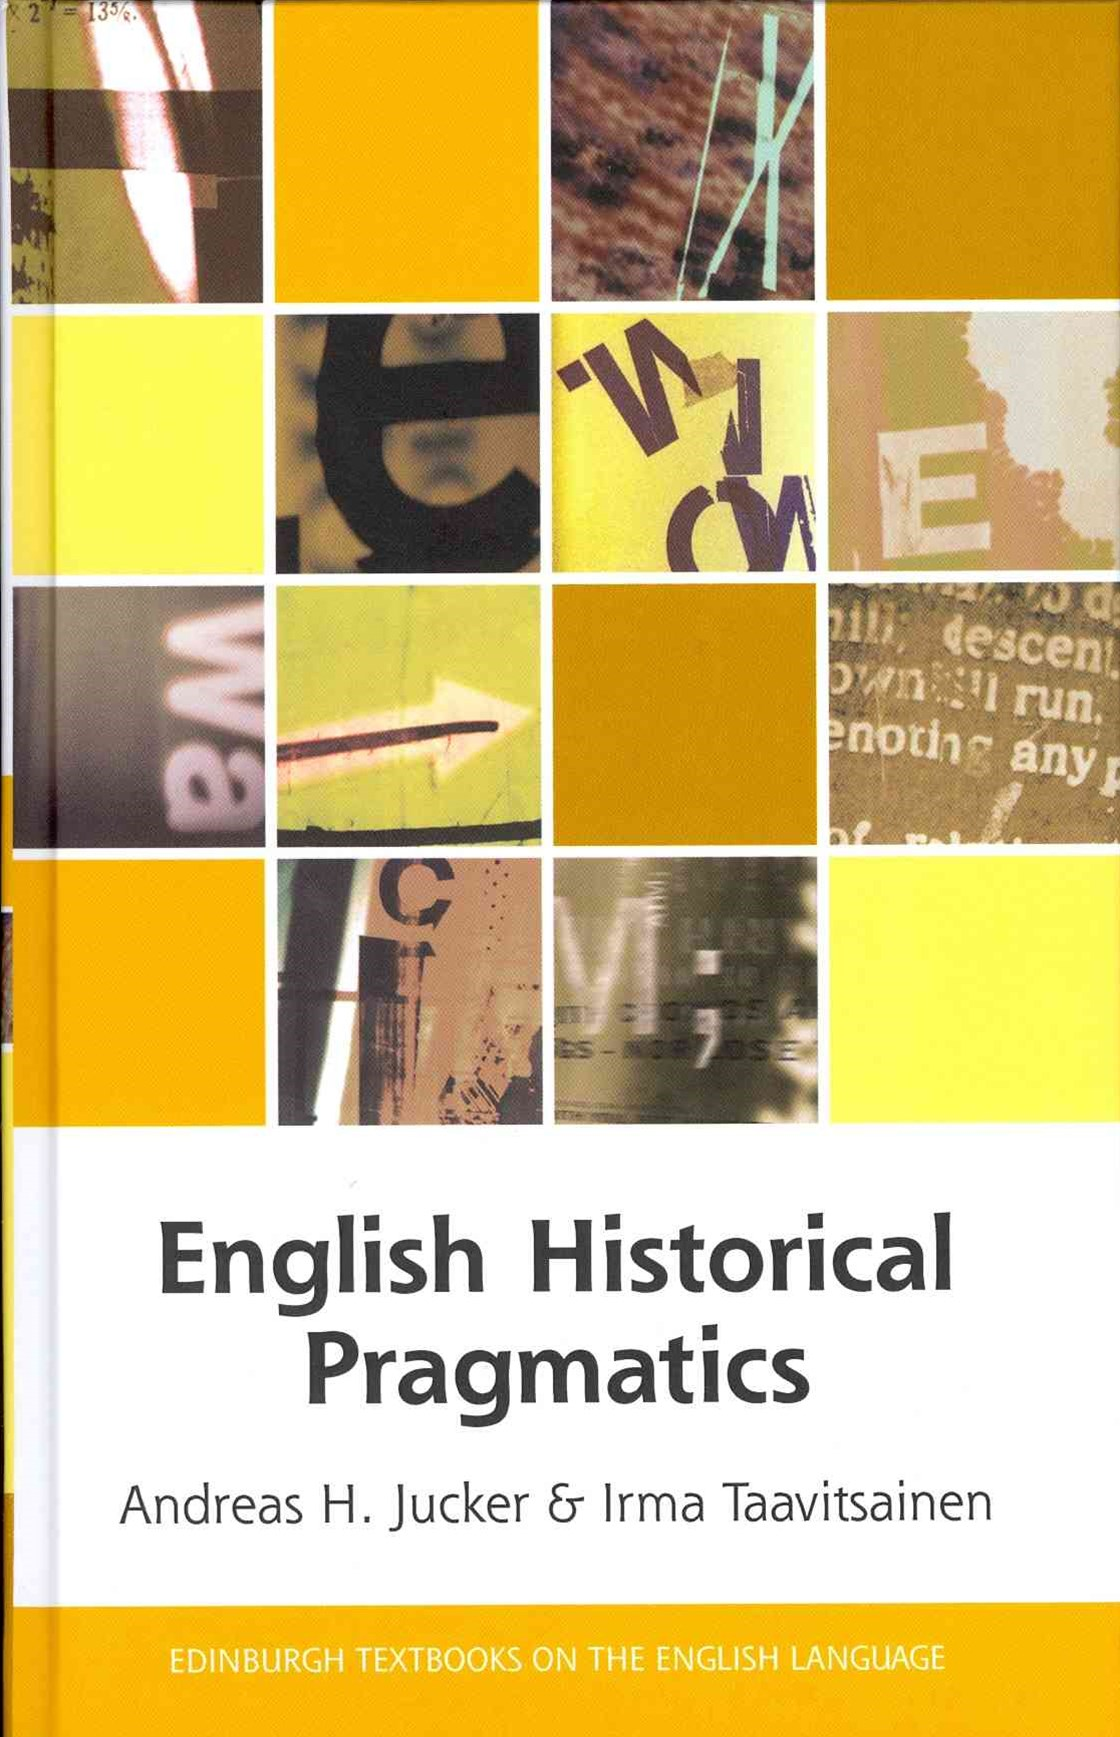 English Historical Pragmatics